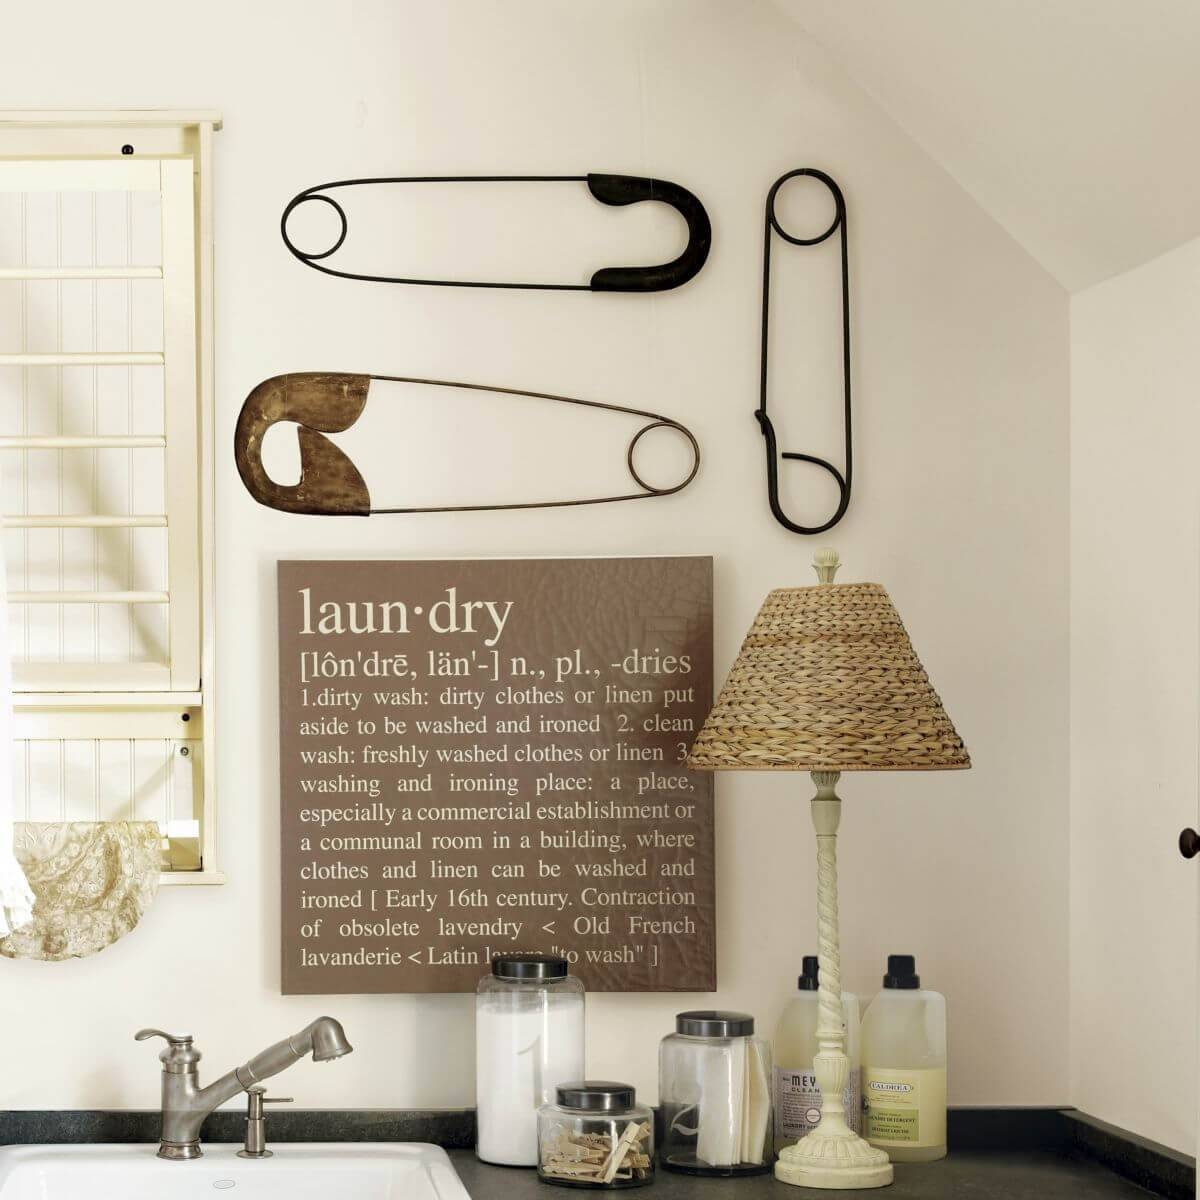 25 Best Vintage Laundry Room Decor Ideas And Designs For 2017 Throughout 2017 Laundry Room Wall Art Decors (View 8 of 25)